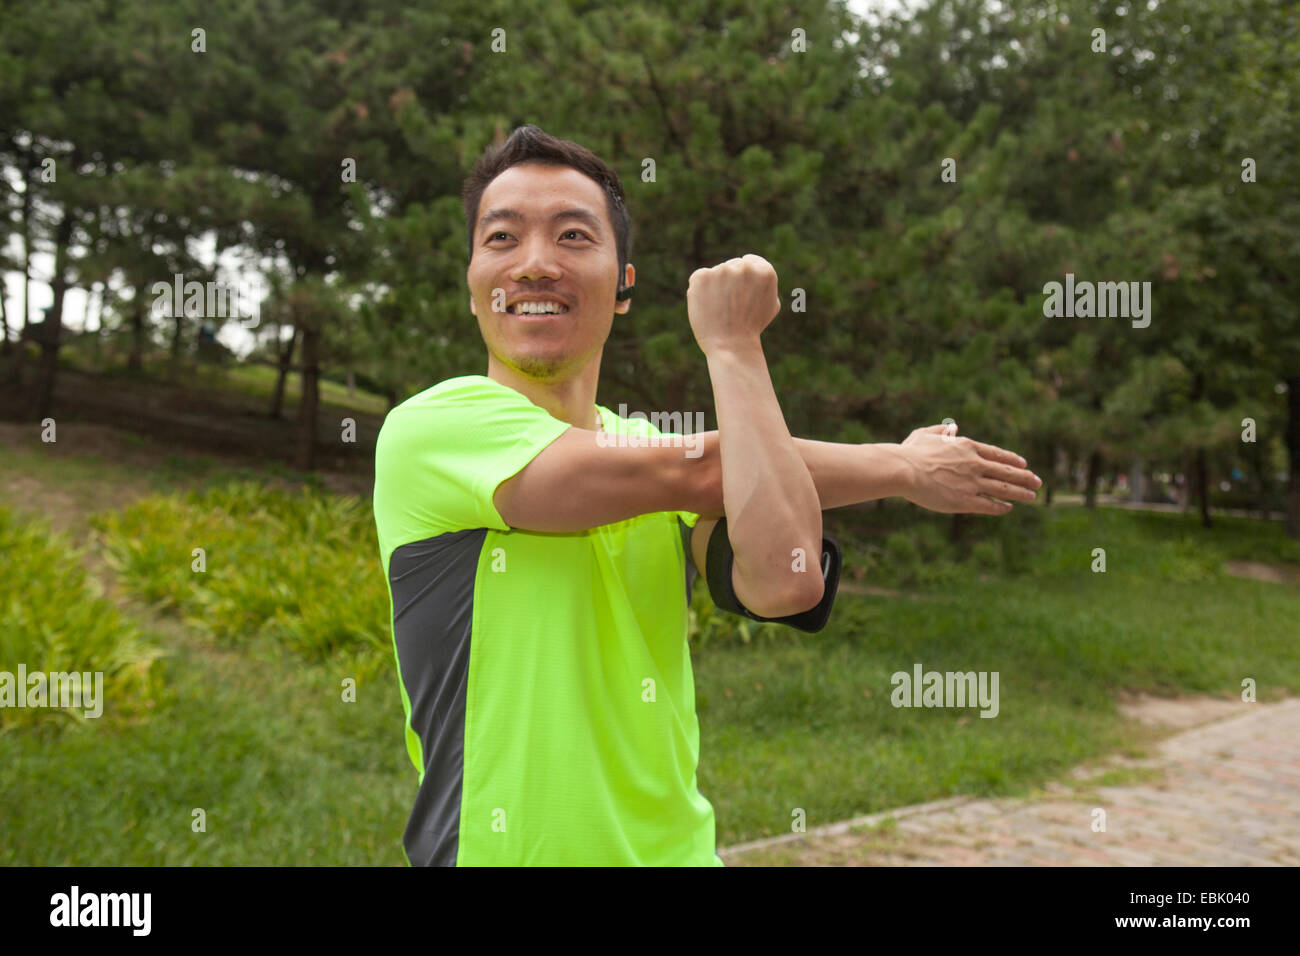 Young male runner stretching arms in park - Stock Image